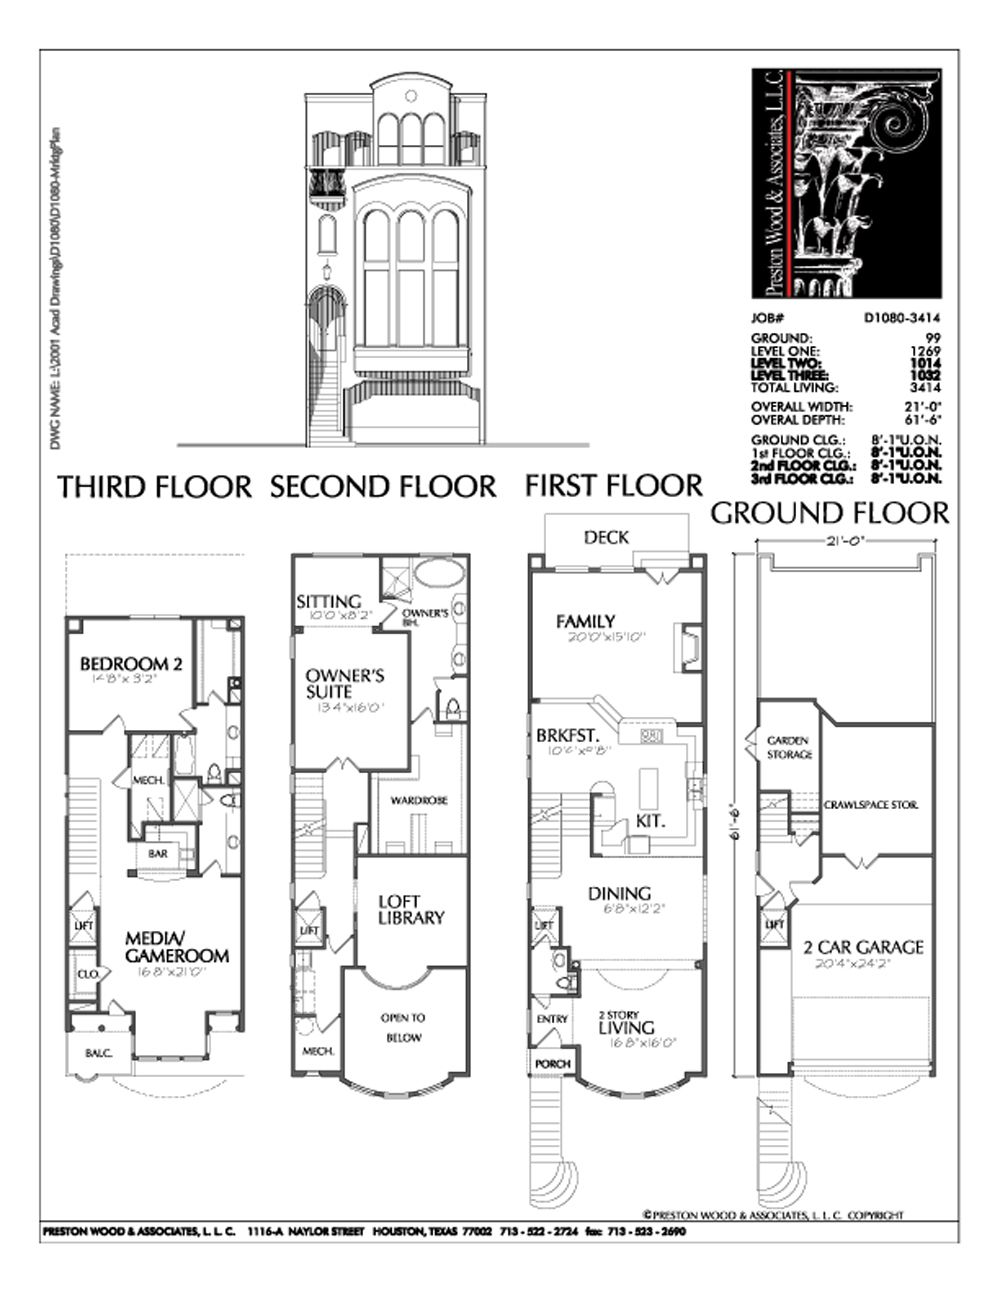 duplex townhome plan d1080 floor plans pinterest house